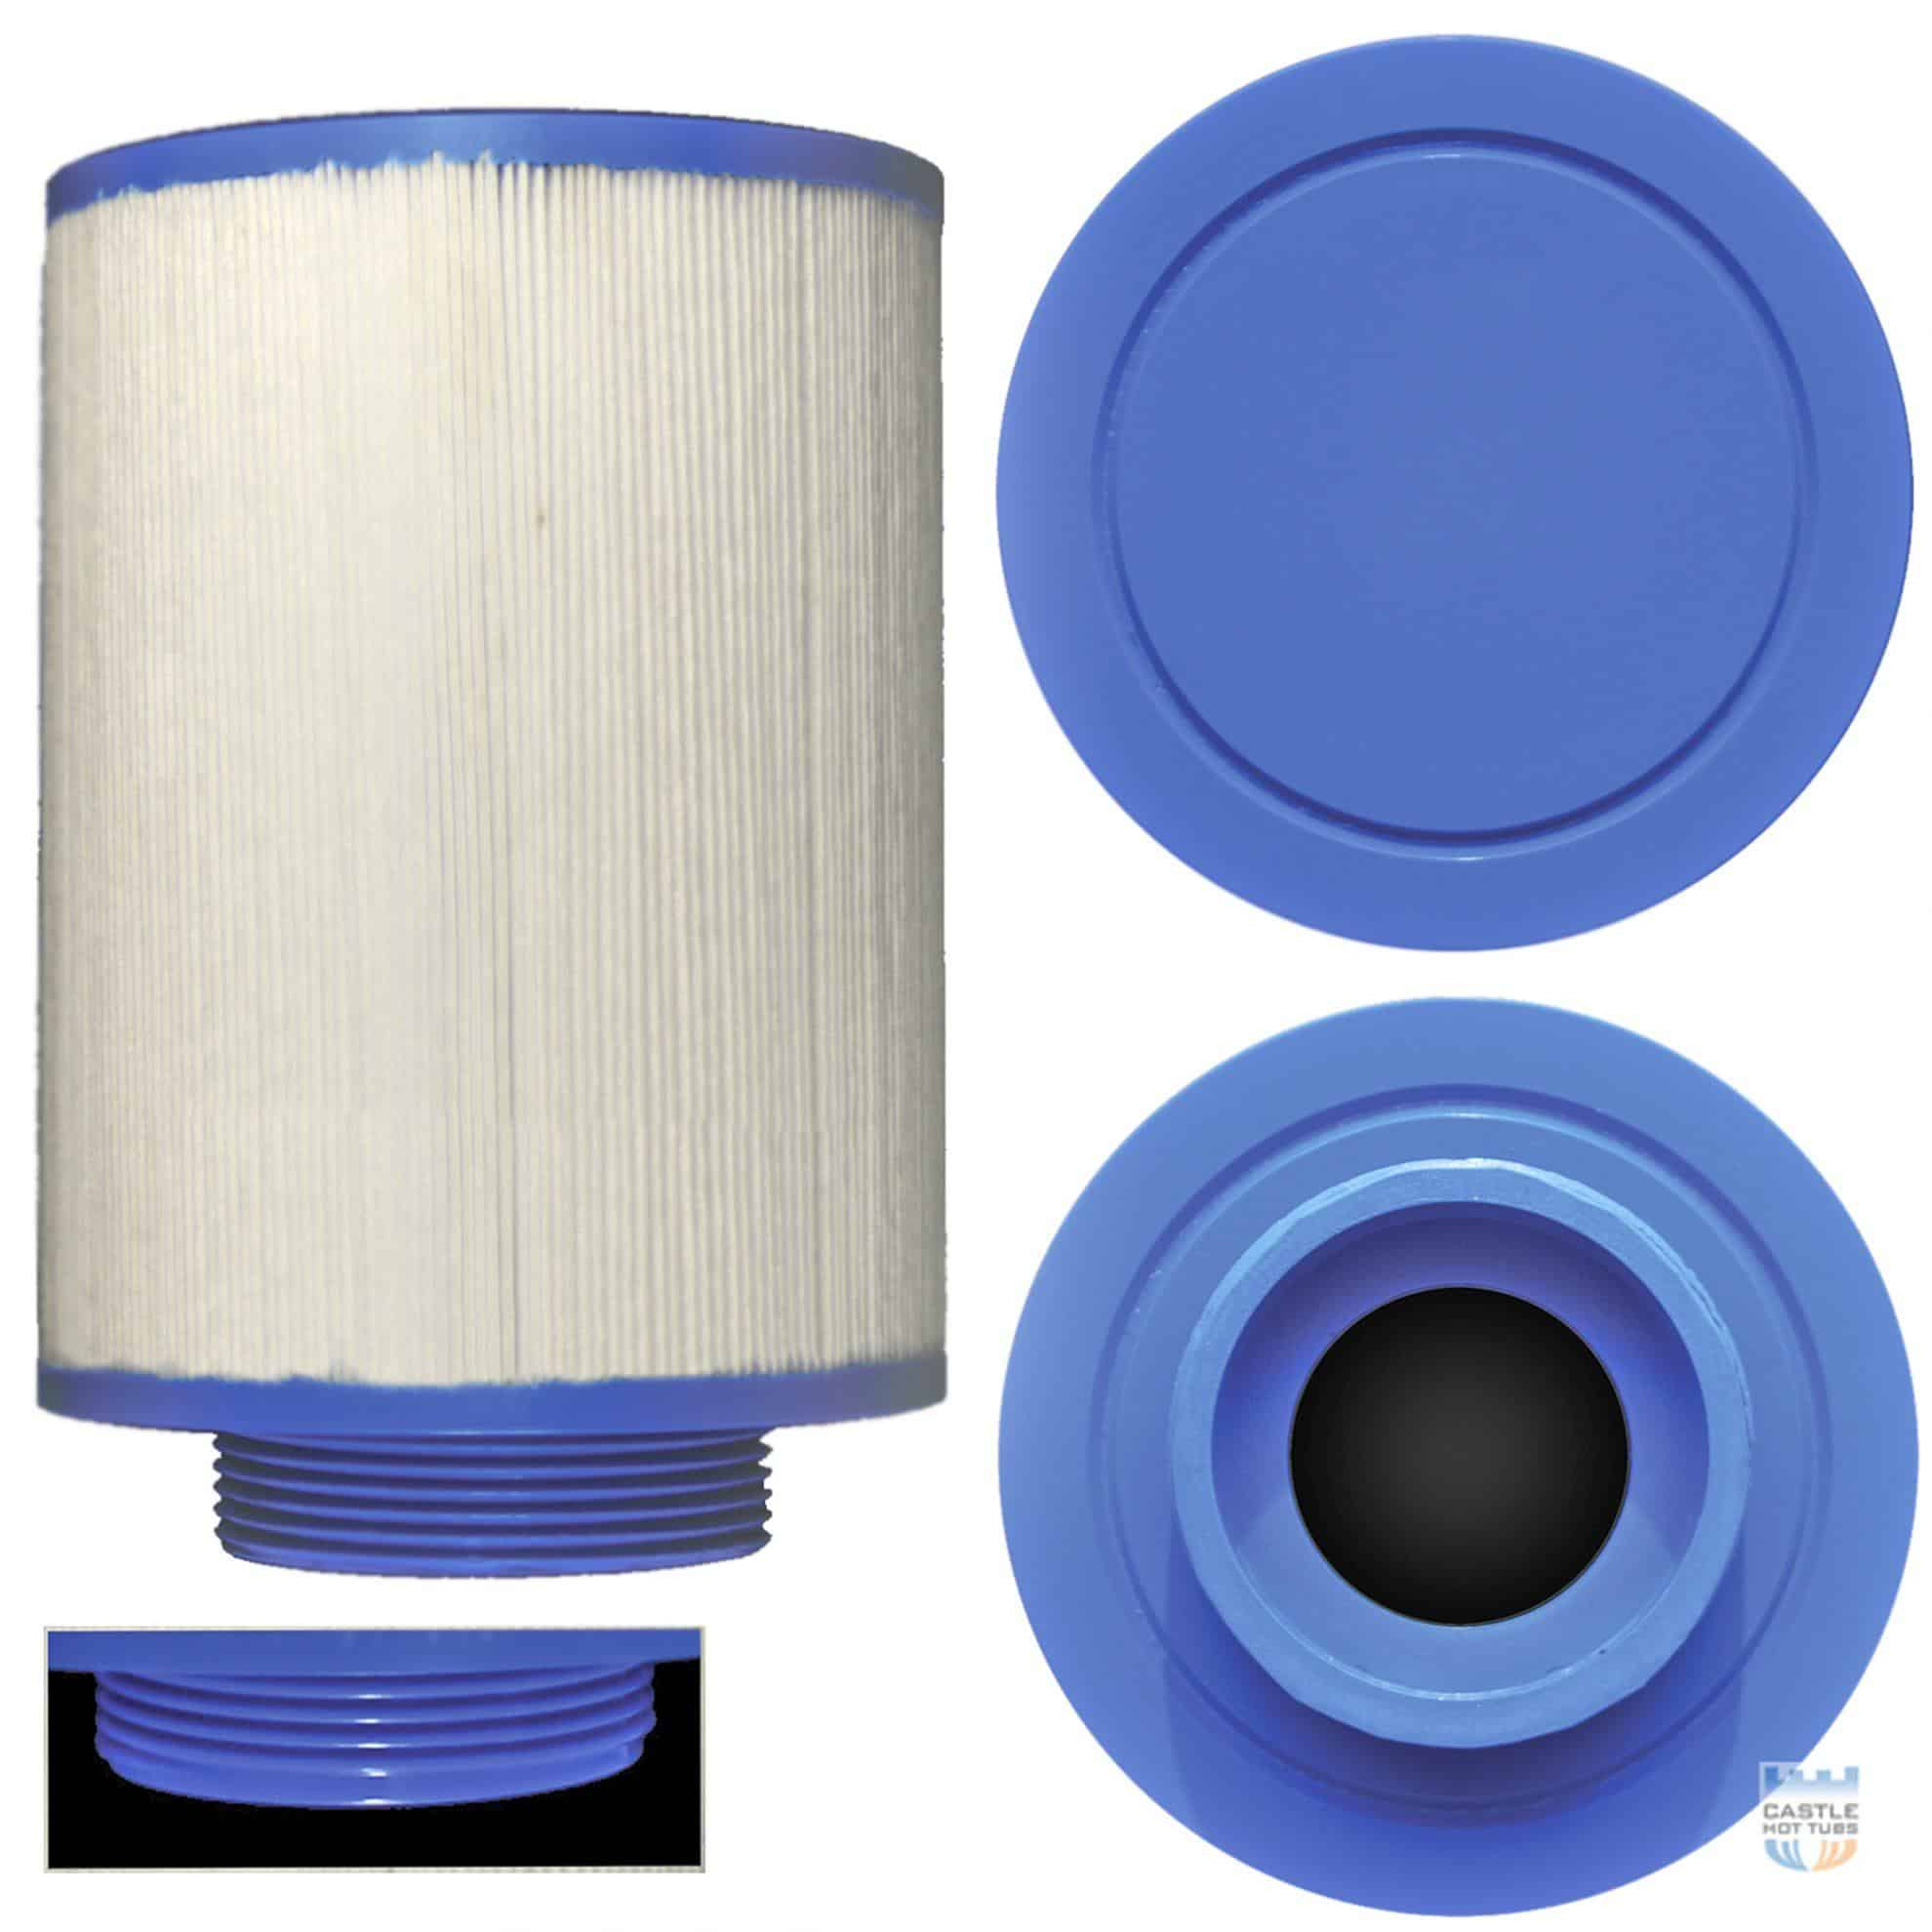 Jacuzzi Replacement Pool Filter Cartridge 5ch203 Hot Tub Filter Spa Replacement Filter Castle